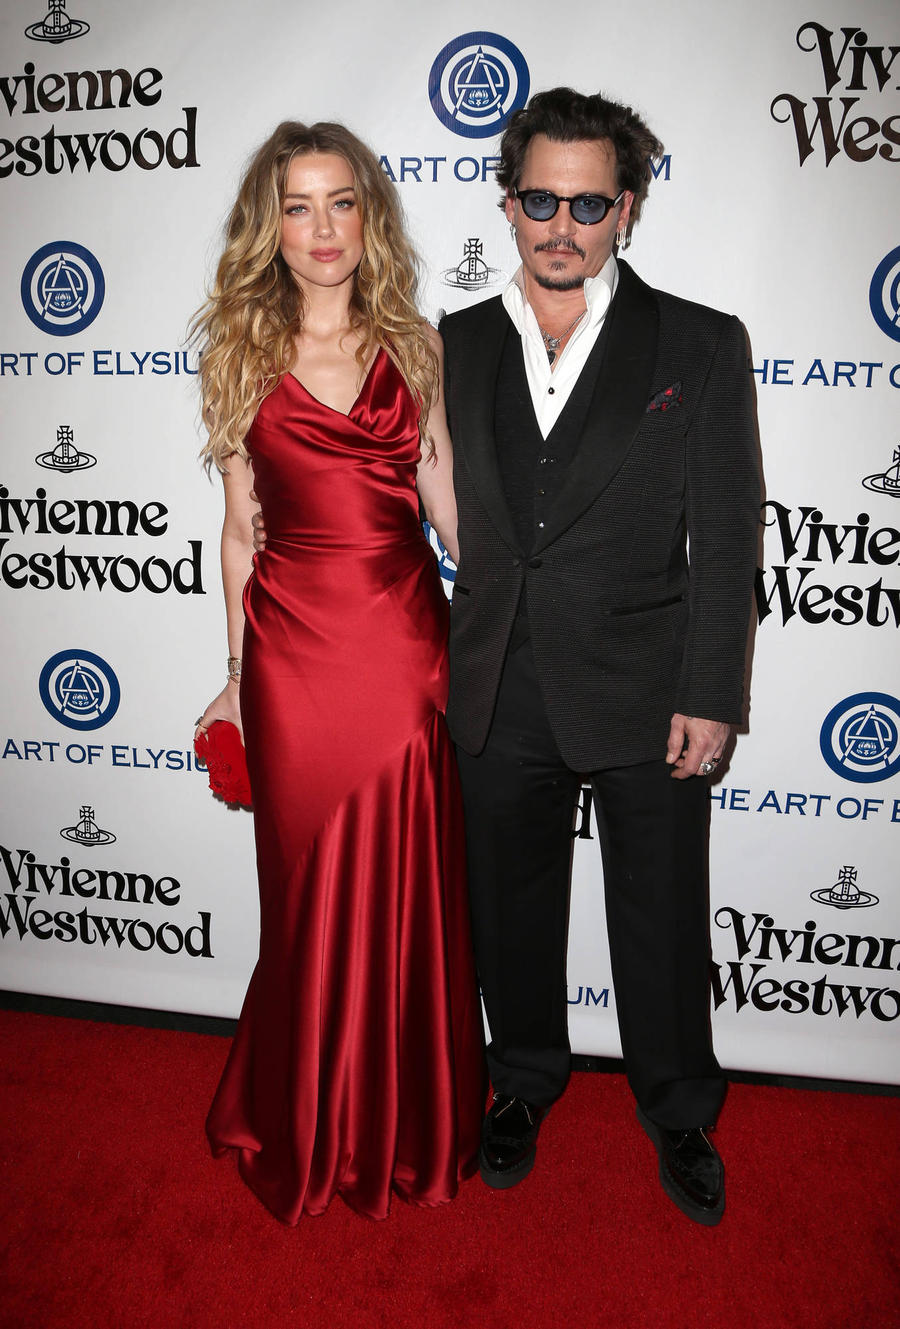 Shocking Video Of Johnny Depp Smashing Wine Bottle In Front Of Amber Heard Leaked